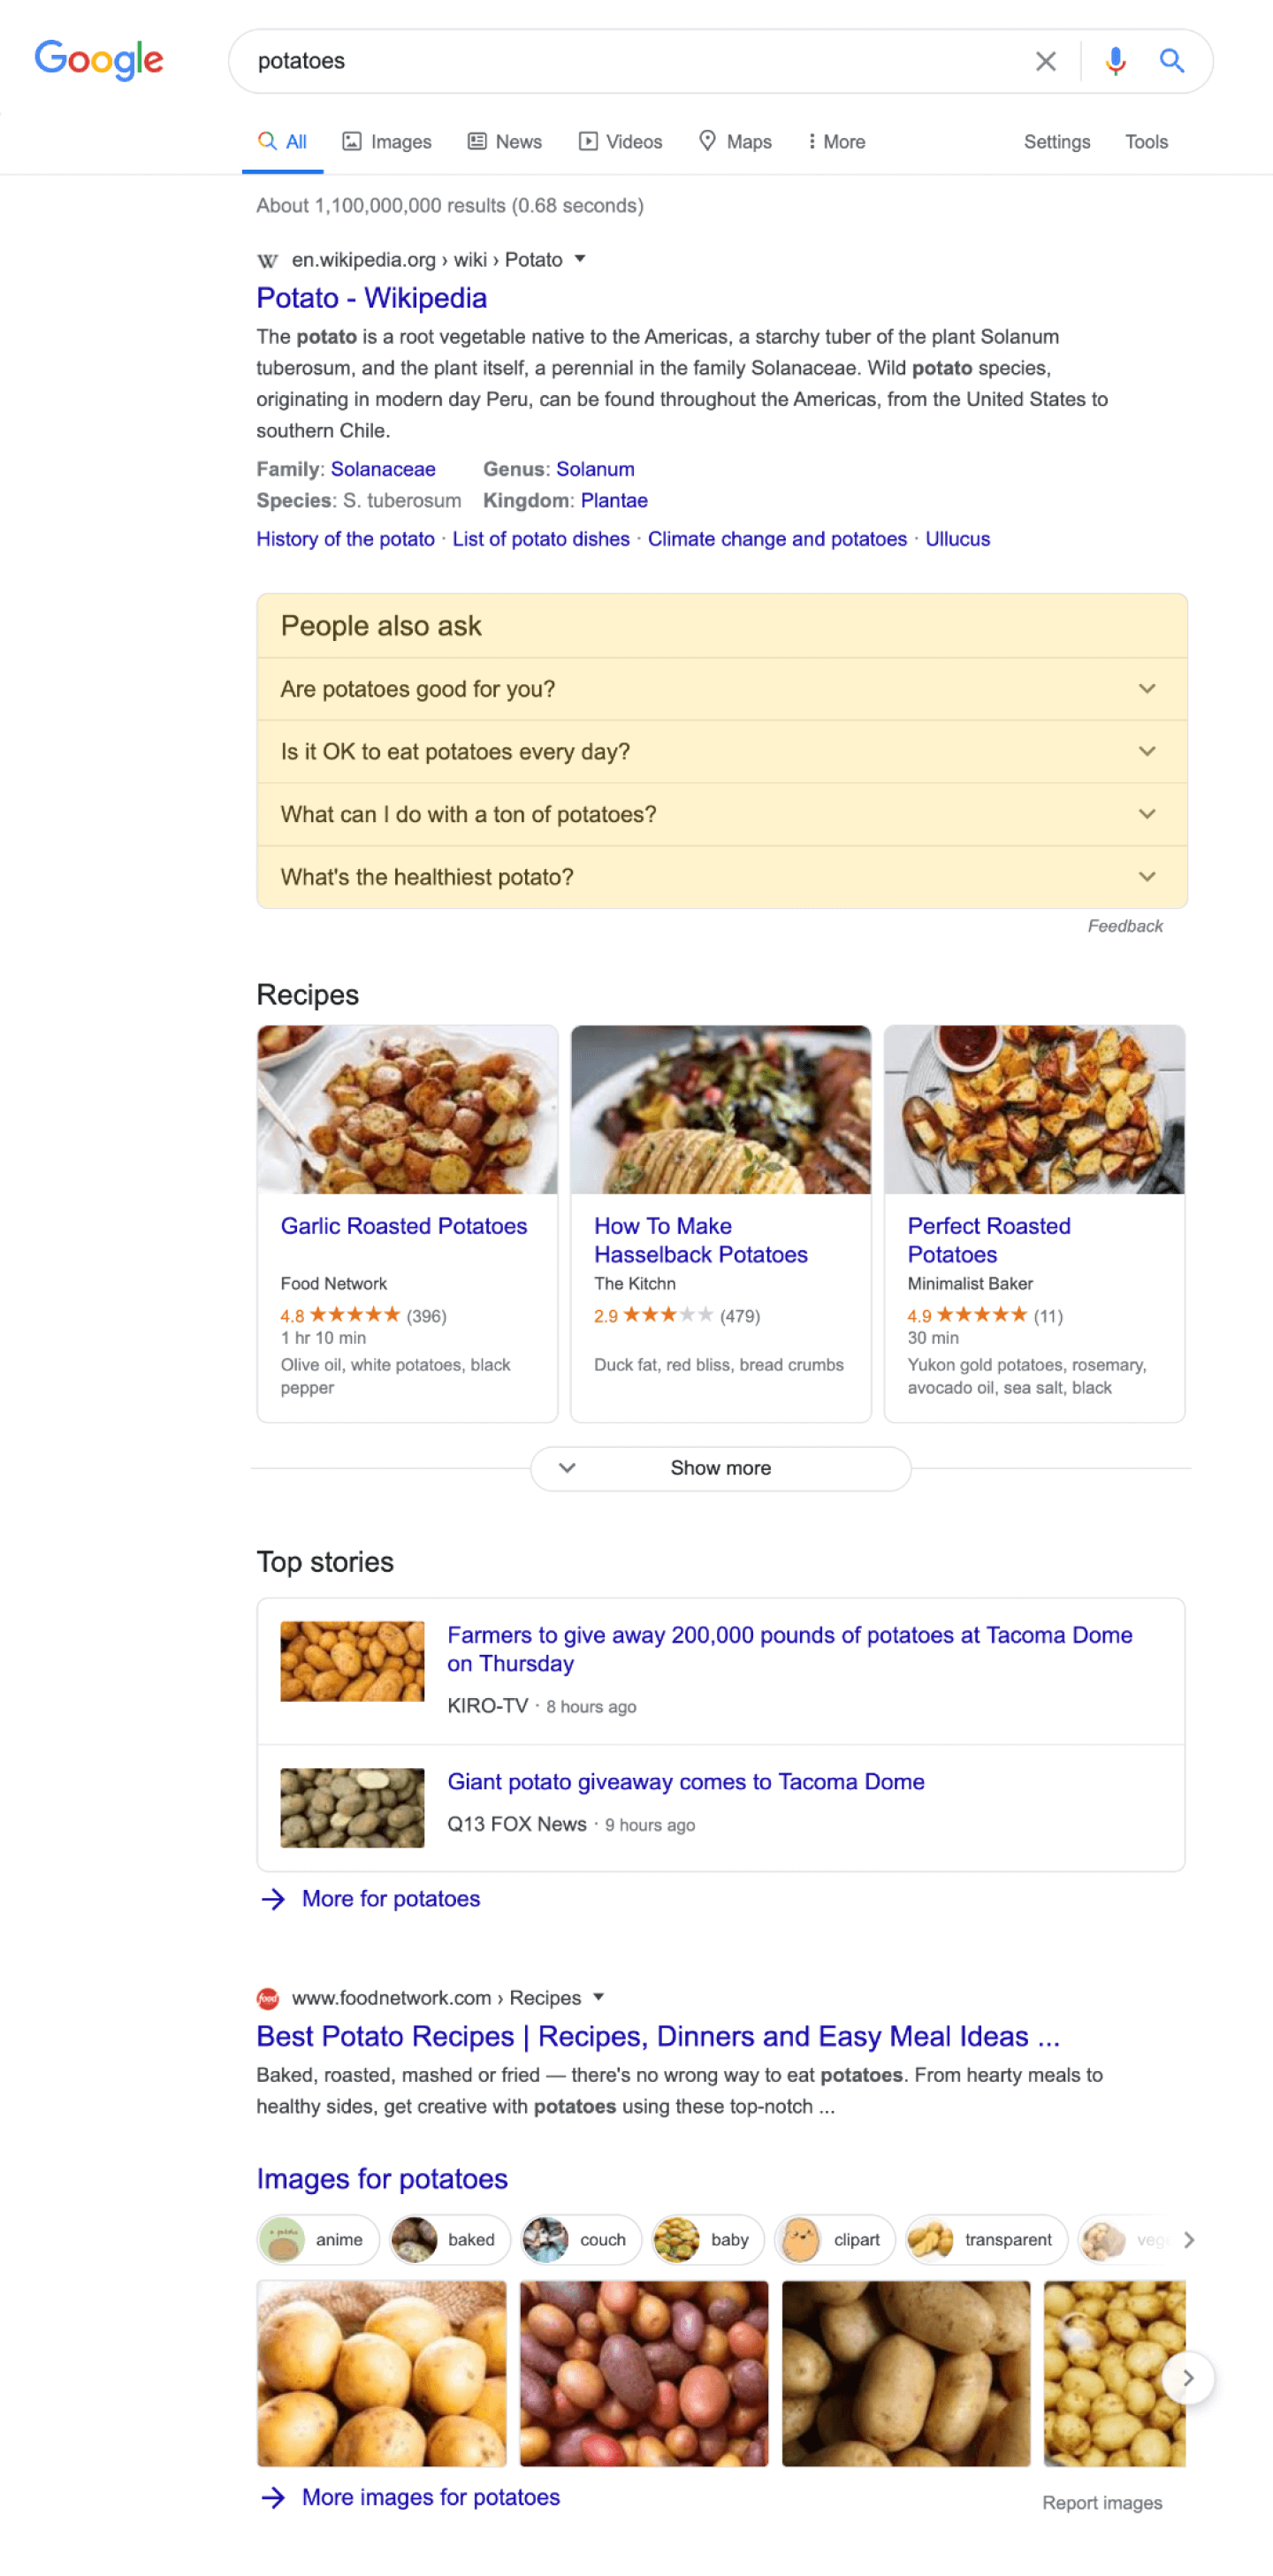 Screenshot with Google SERP highlighting People Also Ask results.